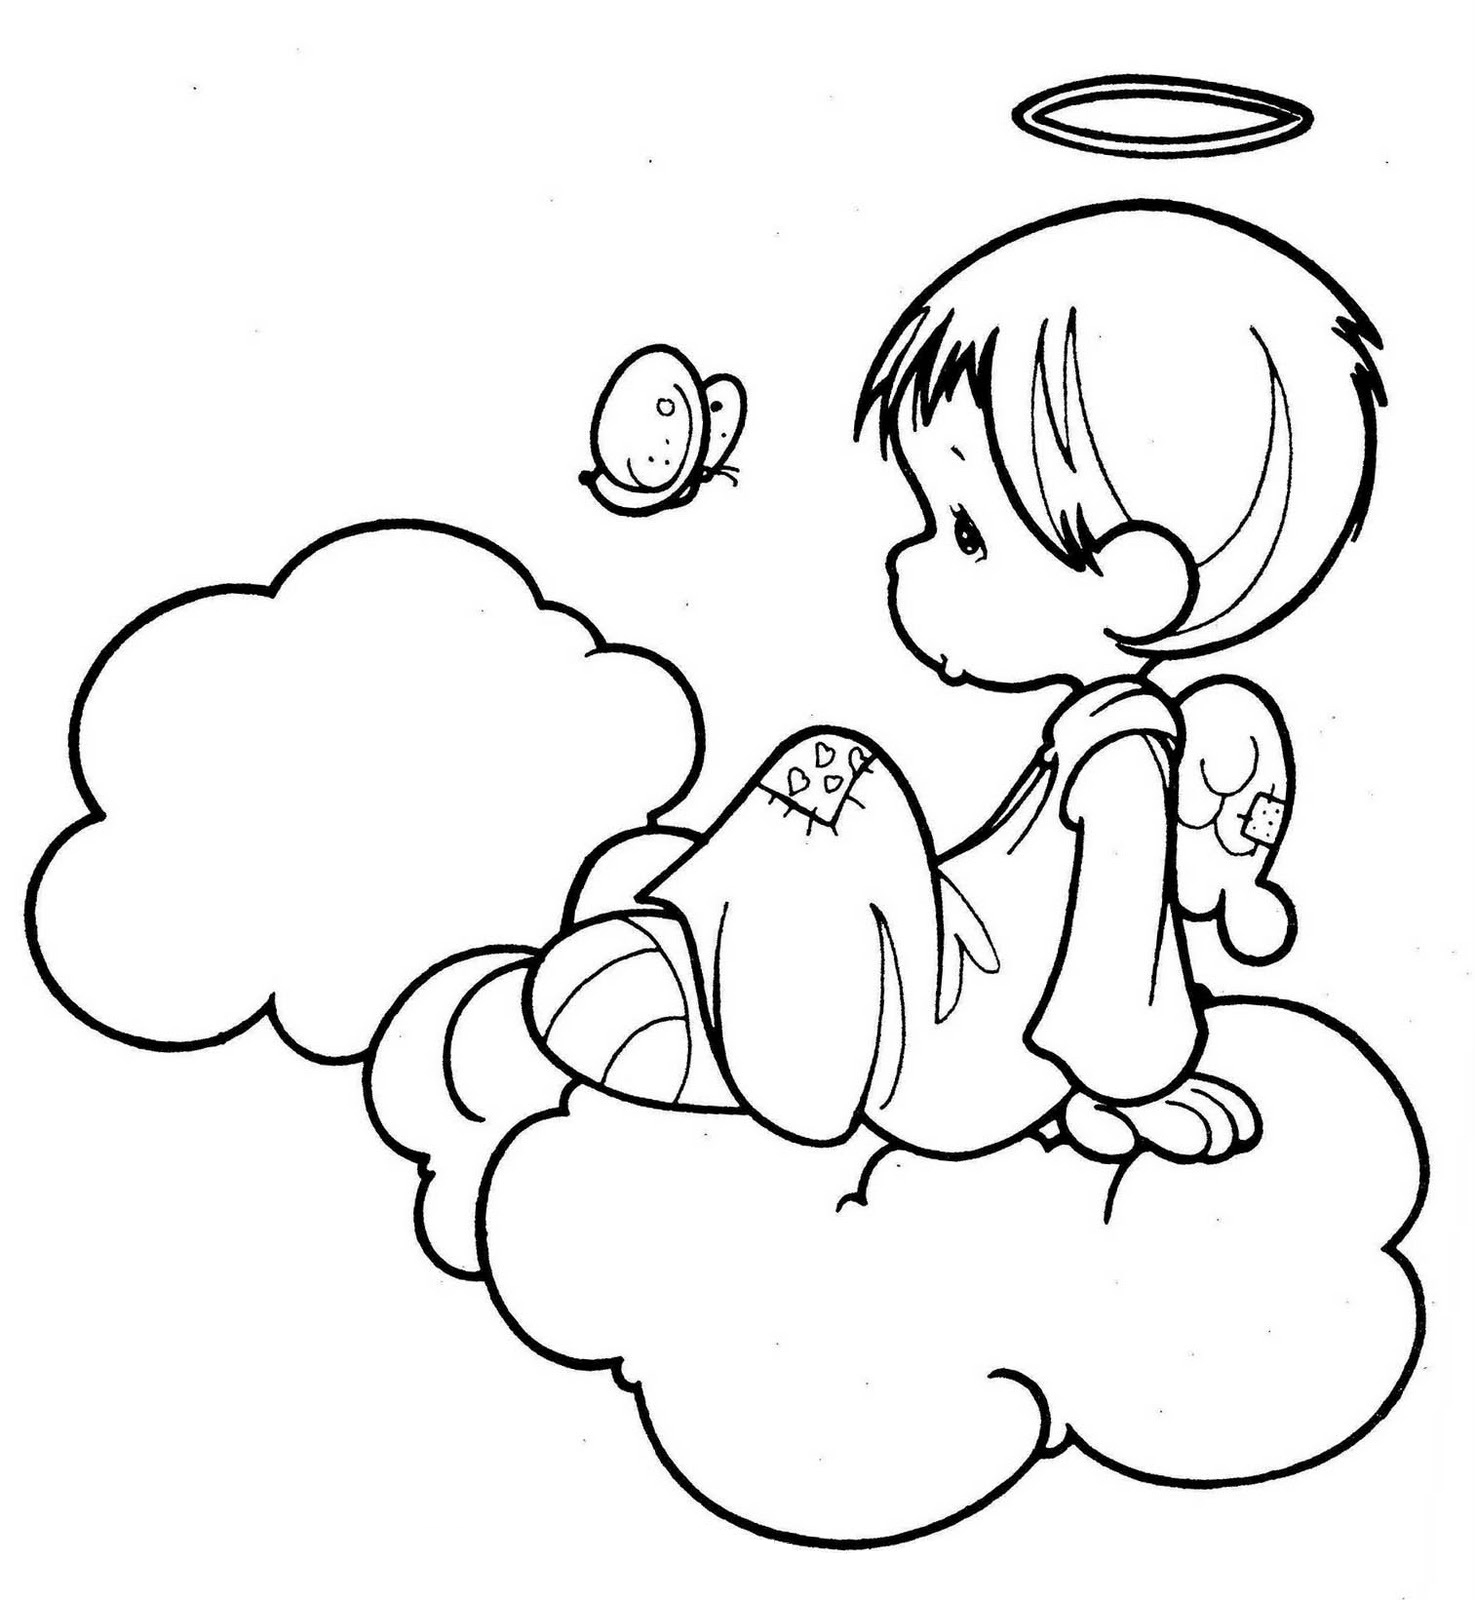 angel coloring sheet kids page angel coloring pages sheet coloring angel